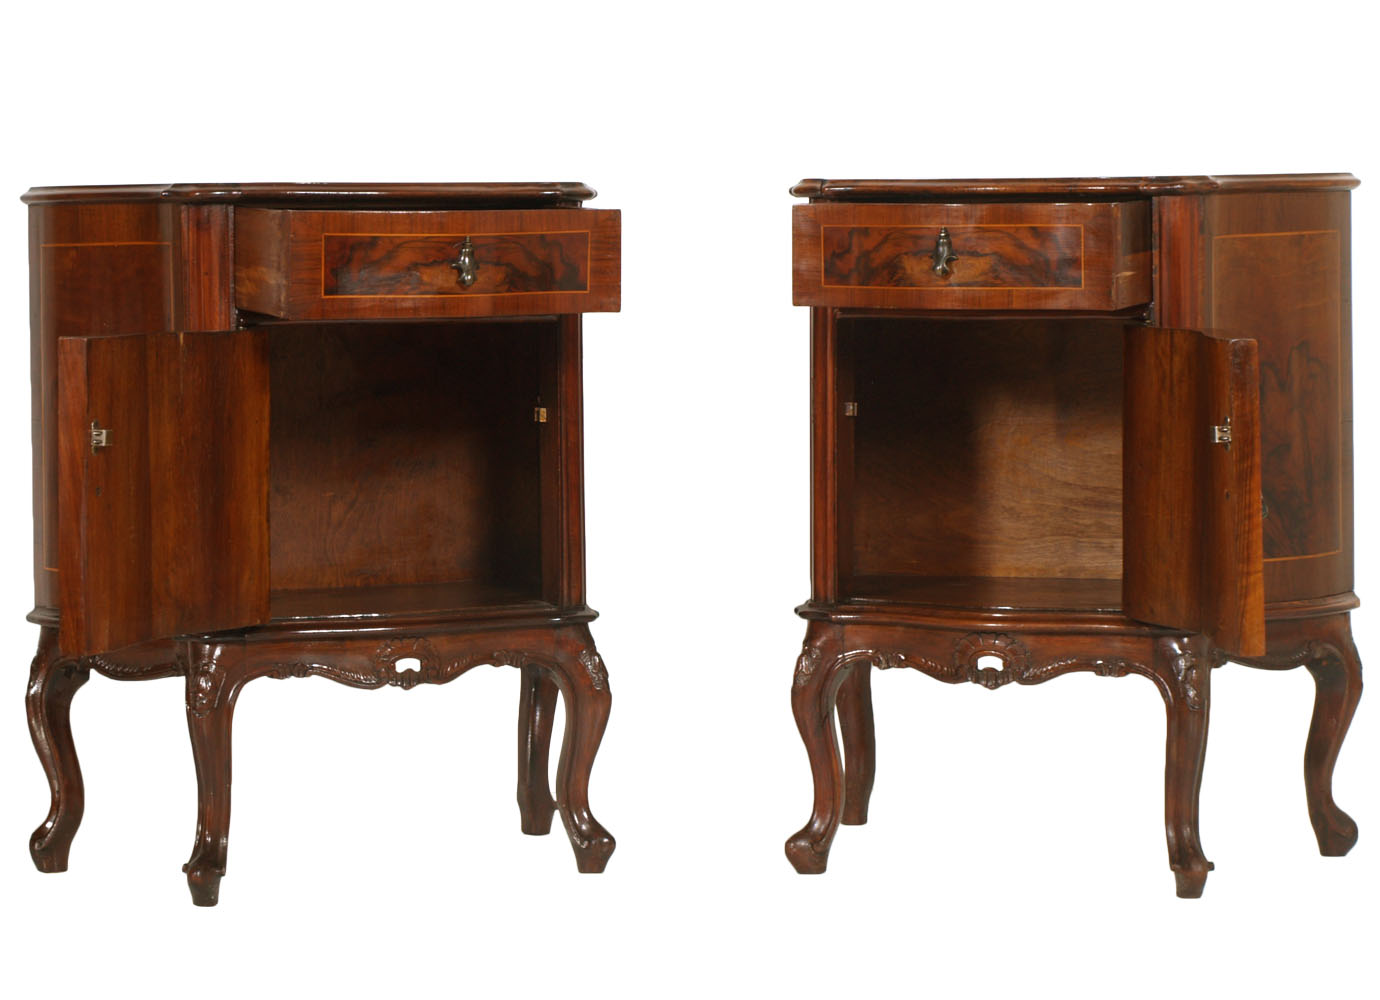 antique-chippendale-bedroom-furniture-set-MAH67-10